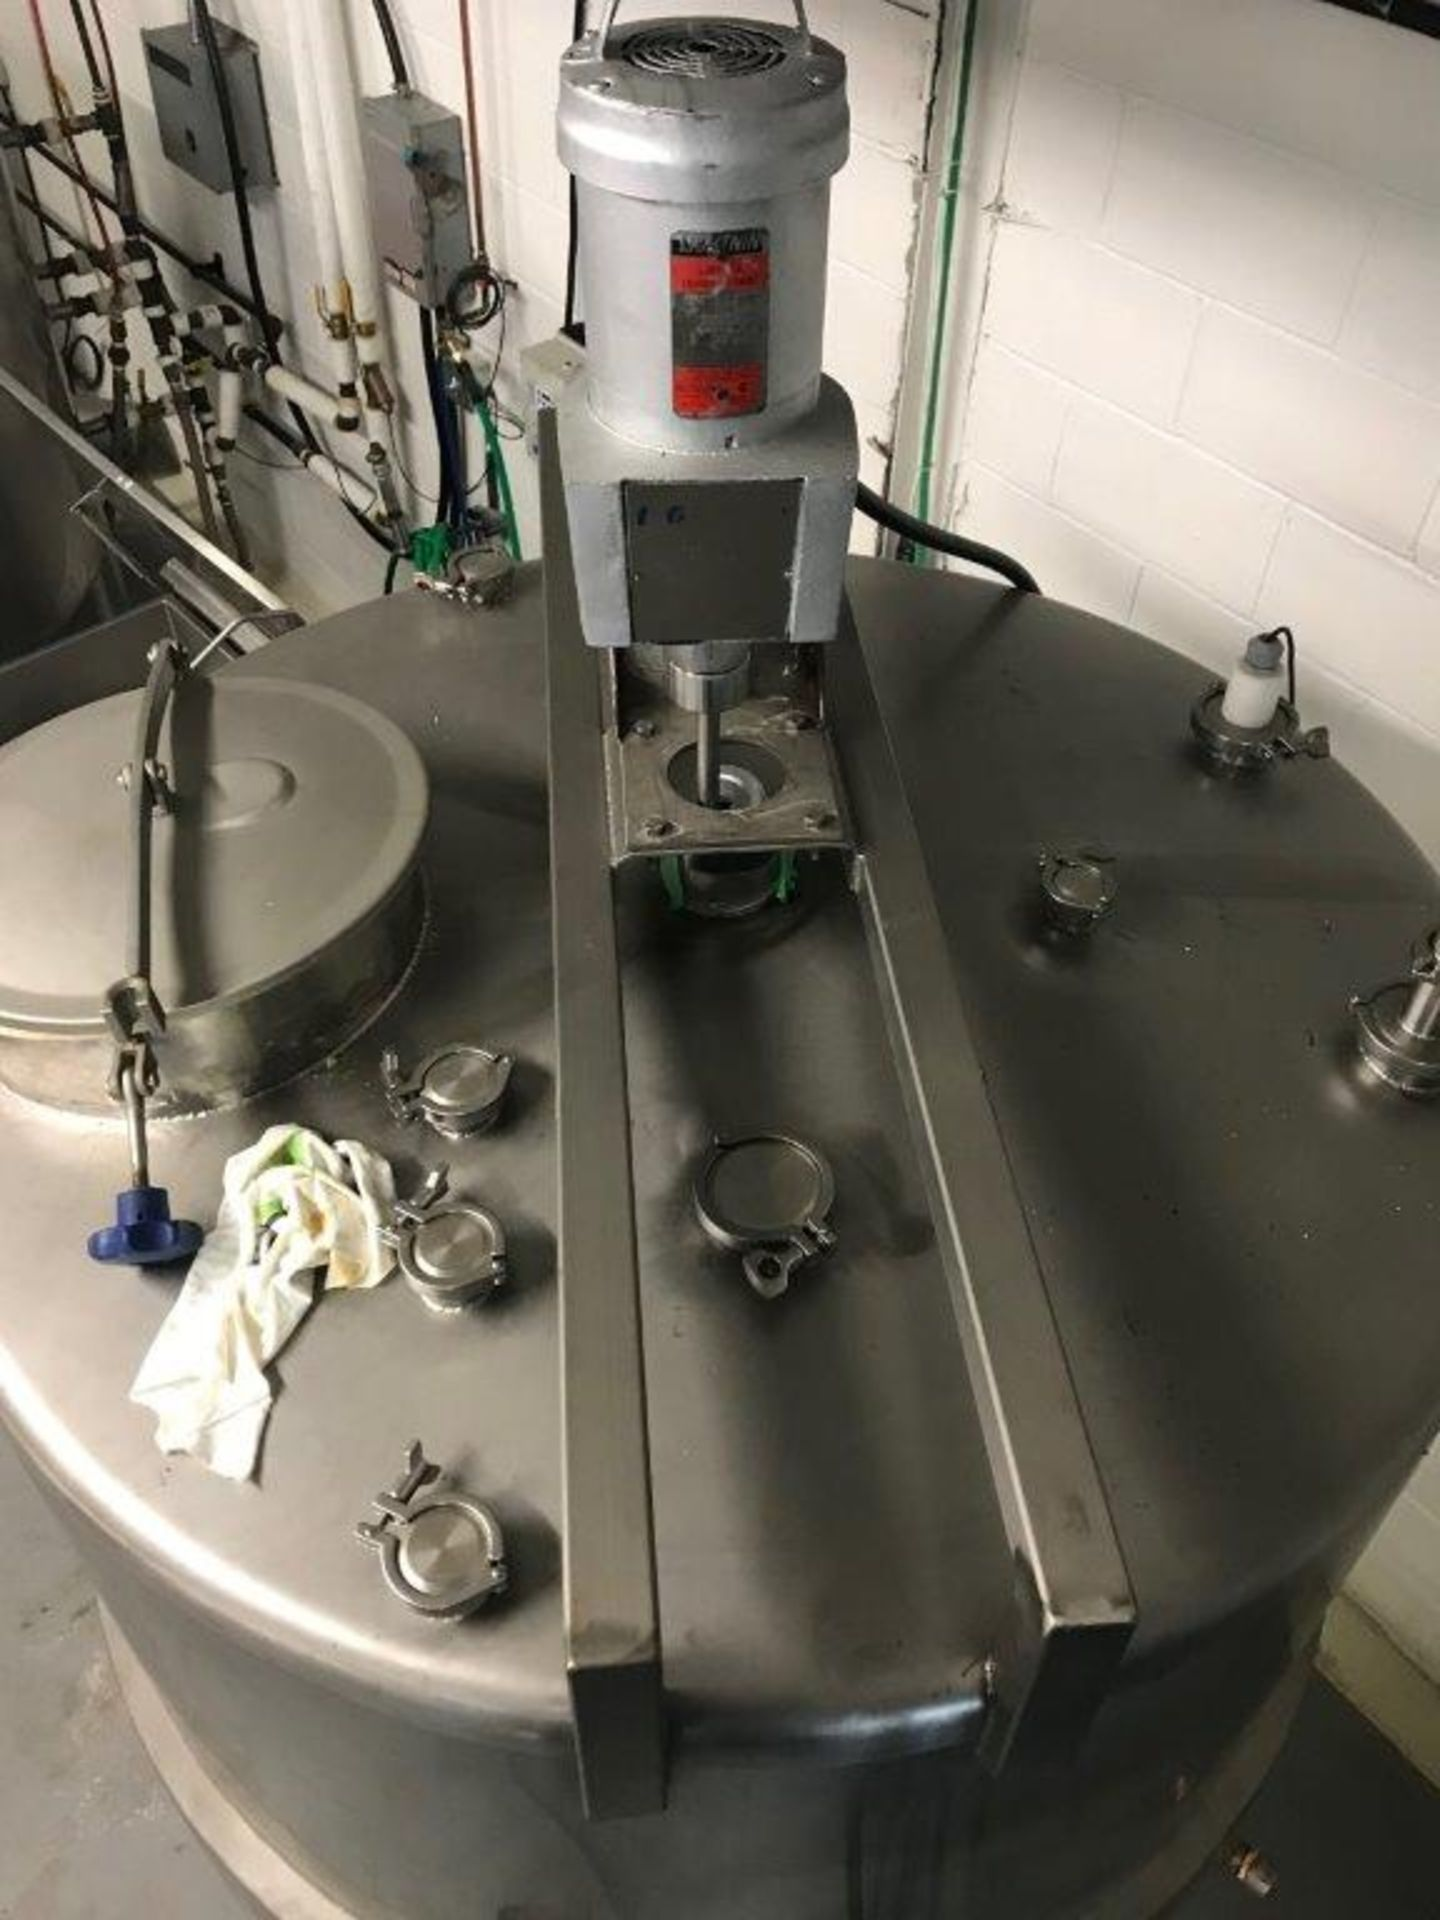 HIGHLAND 700 G JACKETED TANK WITH TOP MOUNTED LIGHTNIN MIXER.- LOCATION - AURORA, ONTARIO - Image 8 of 8